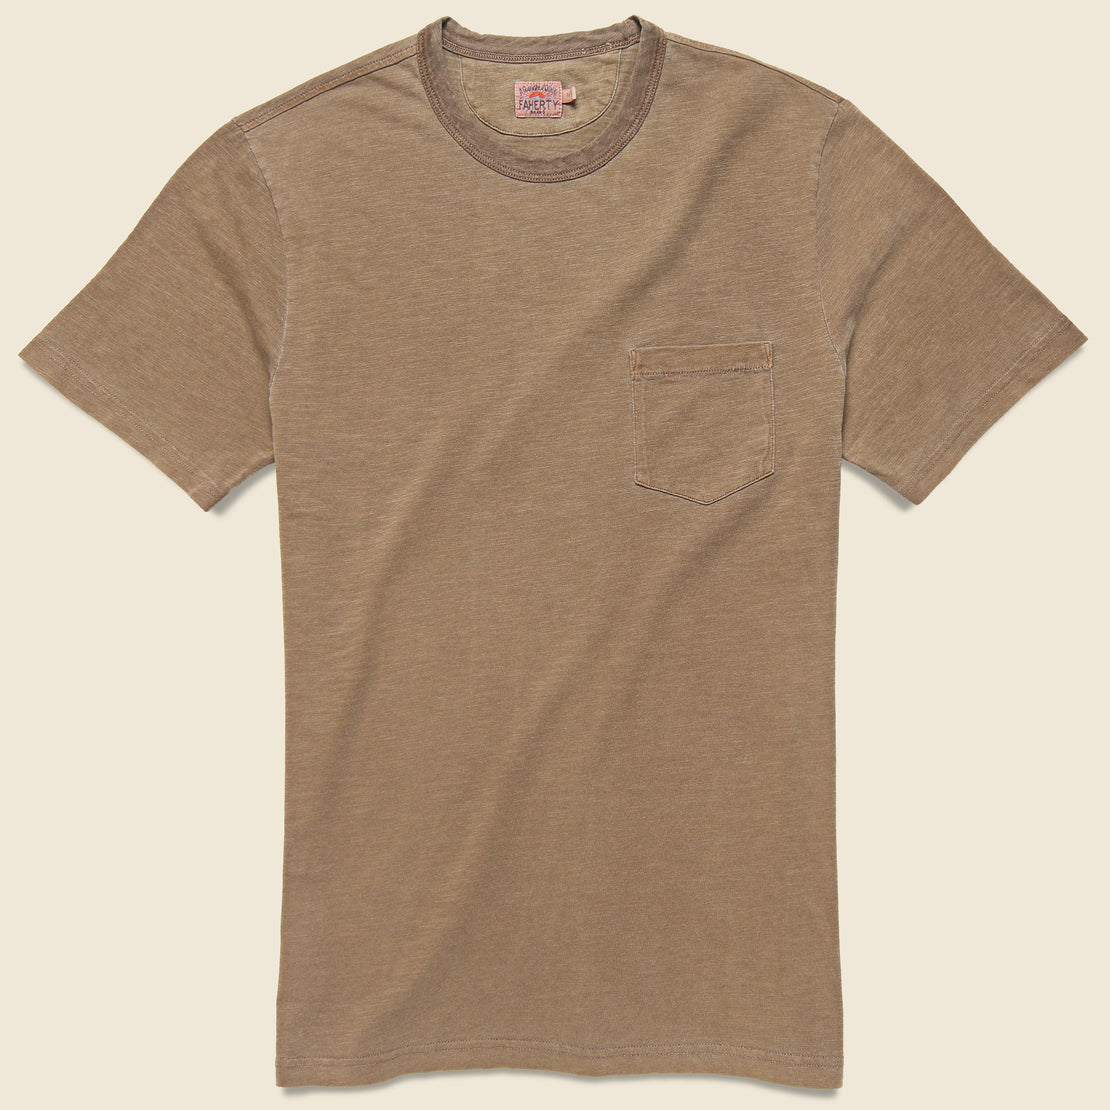 Faherty Garment Dyed Pocket Tee - Henna